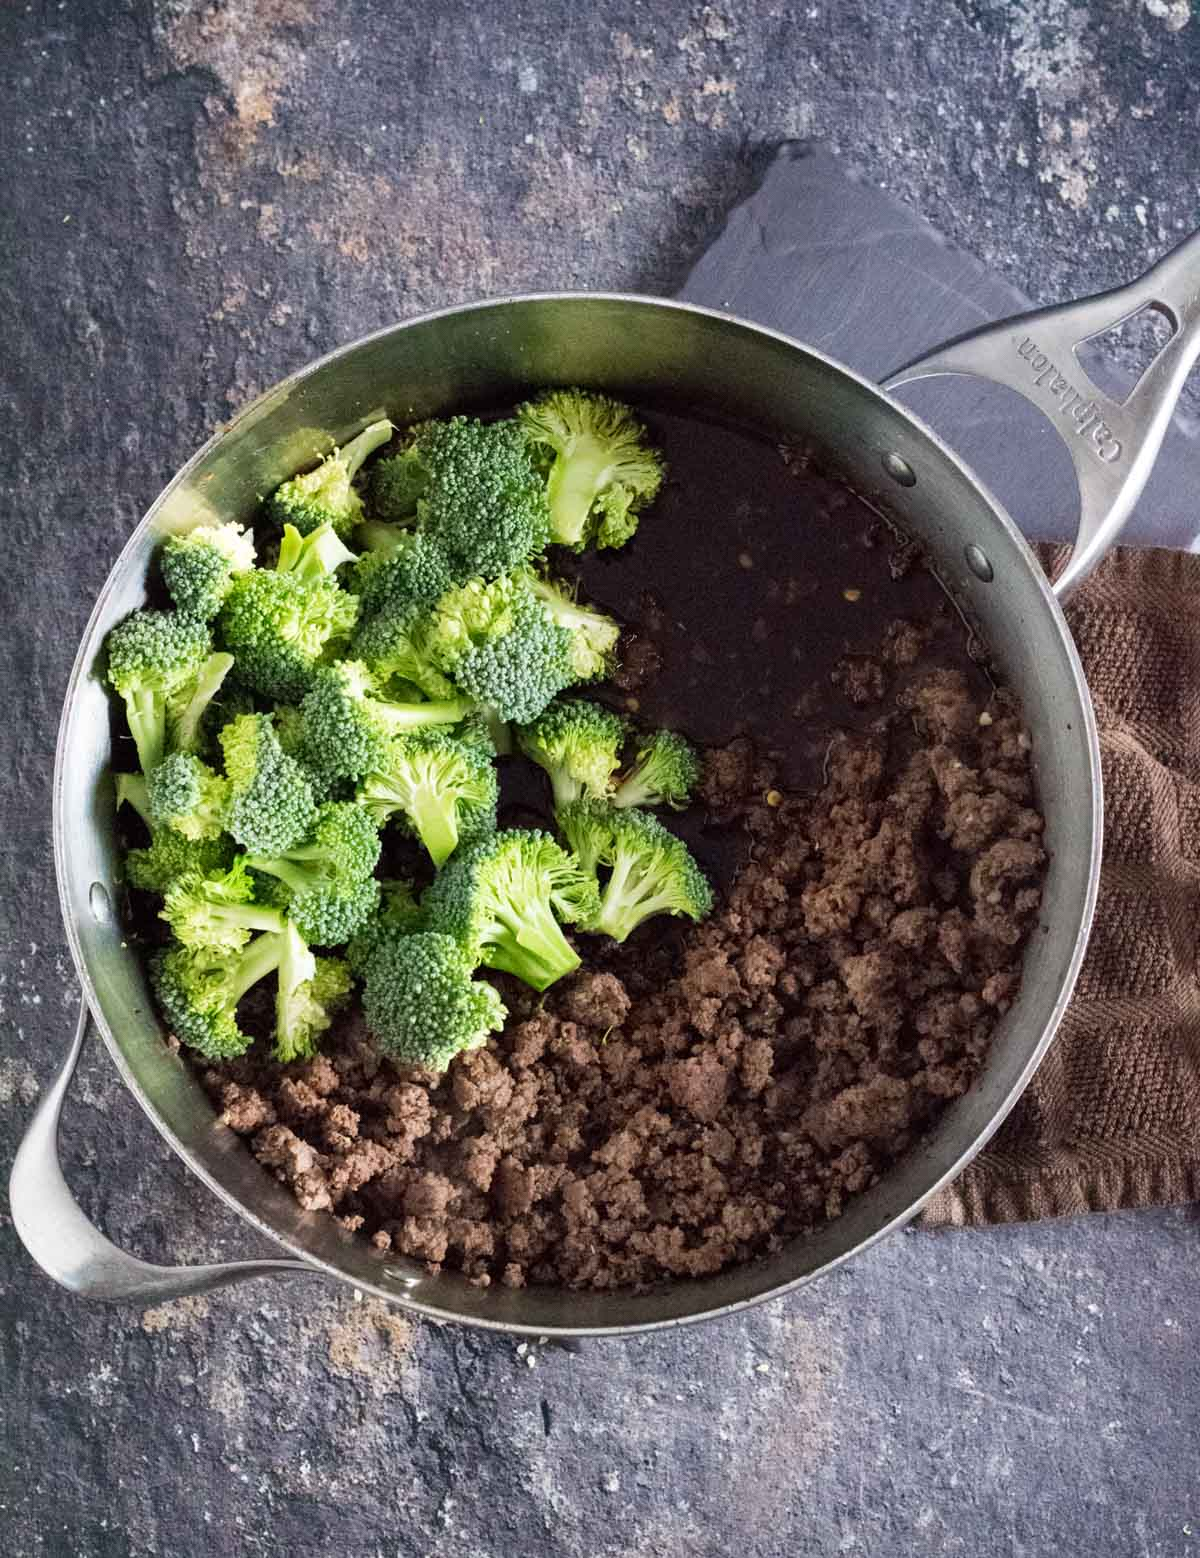 Broccoli florets in skillet with ground beef and stir fry sauce.